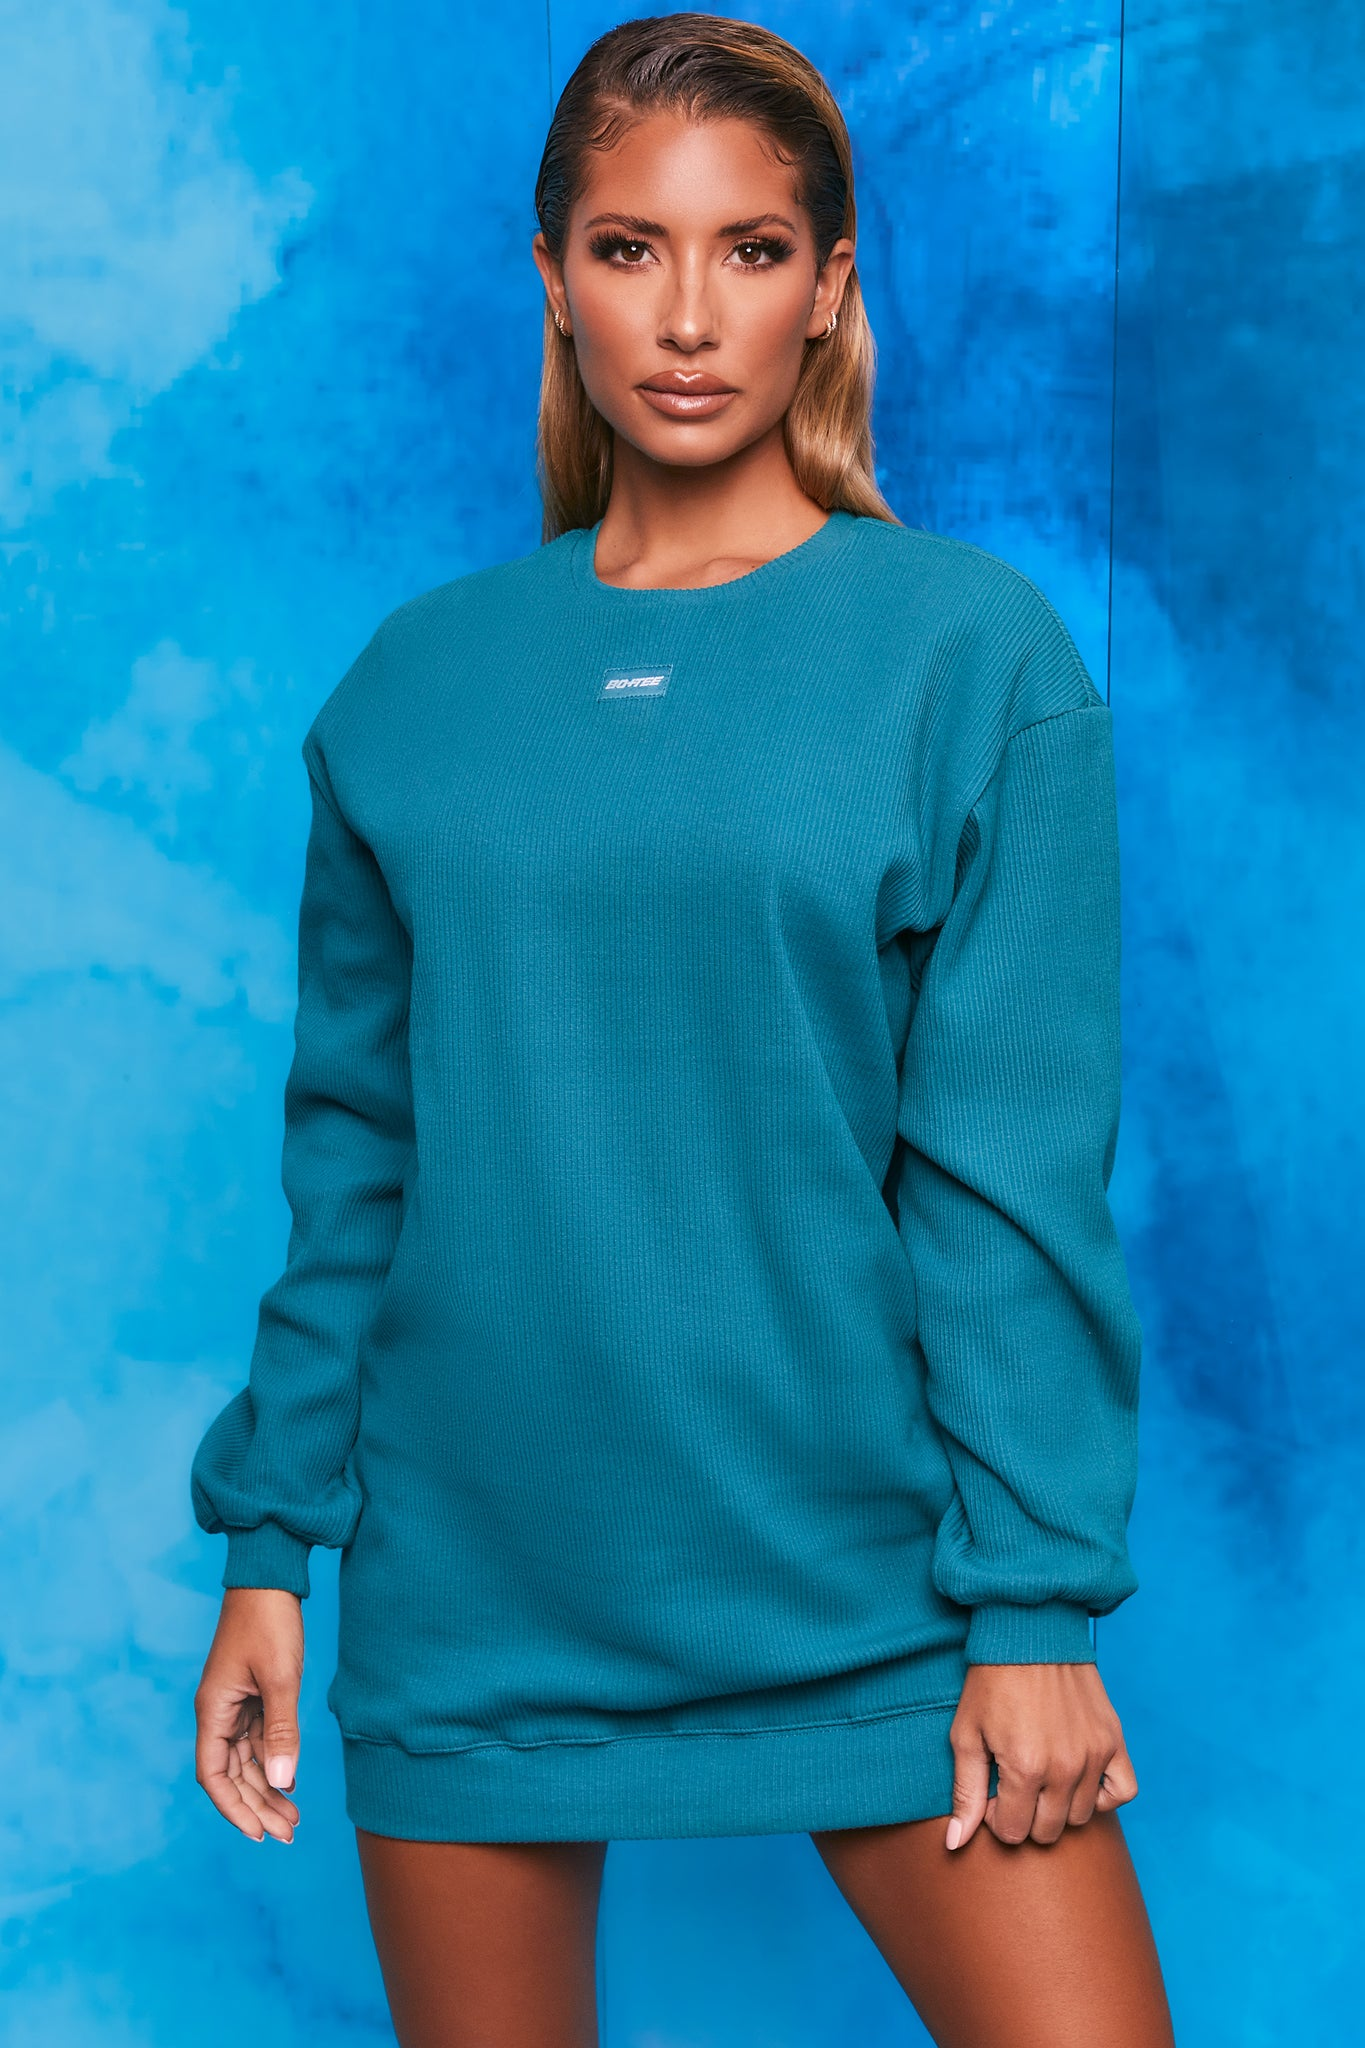 Plain teal ribbed oversized sweatshirt with long sleeves. Image 1 of 6.